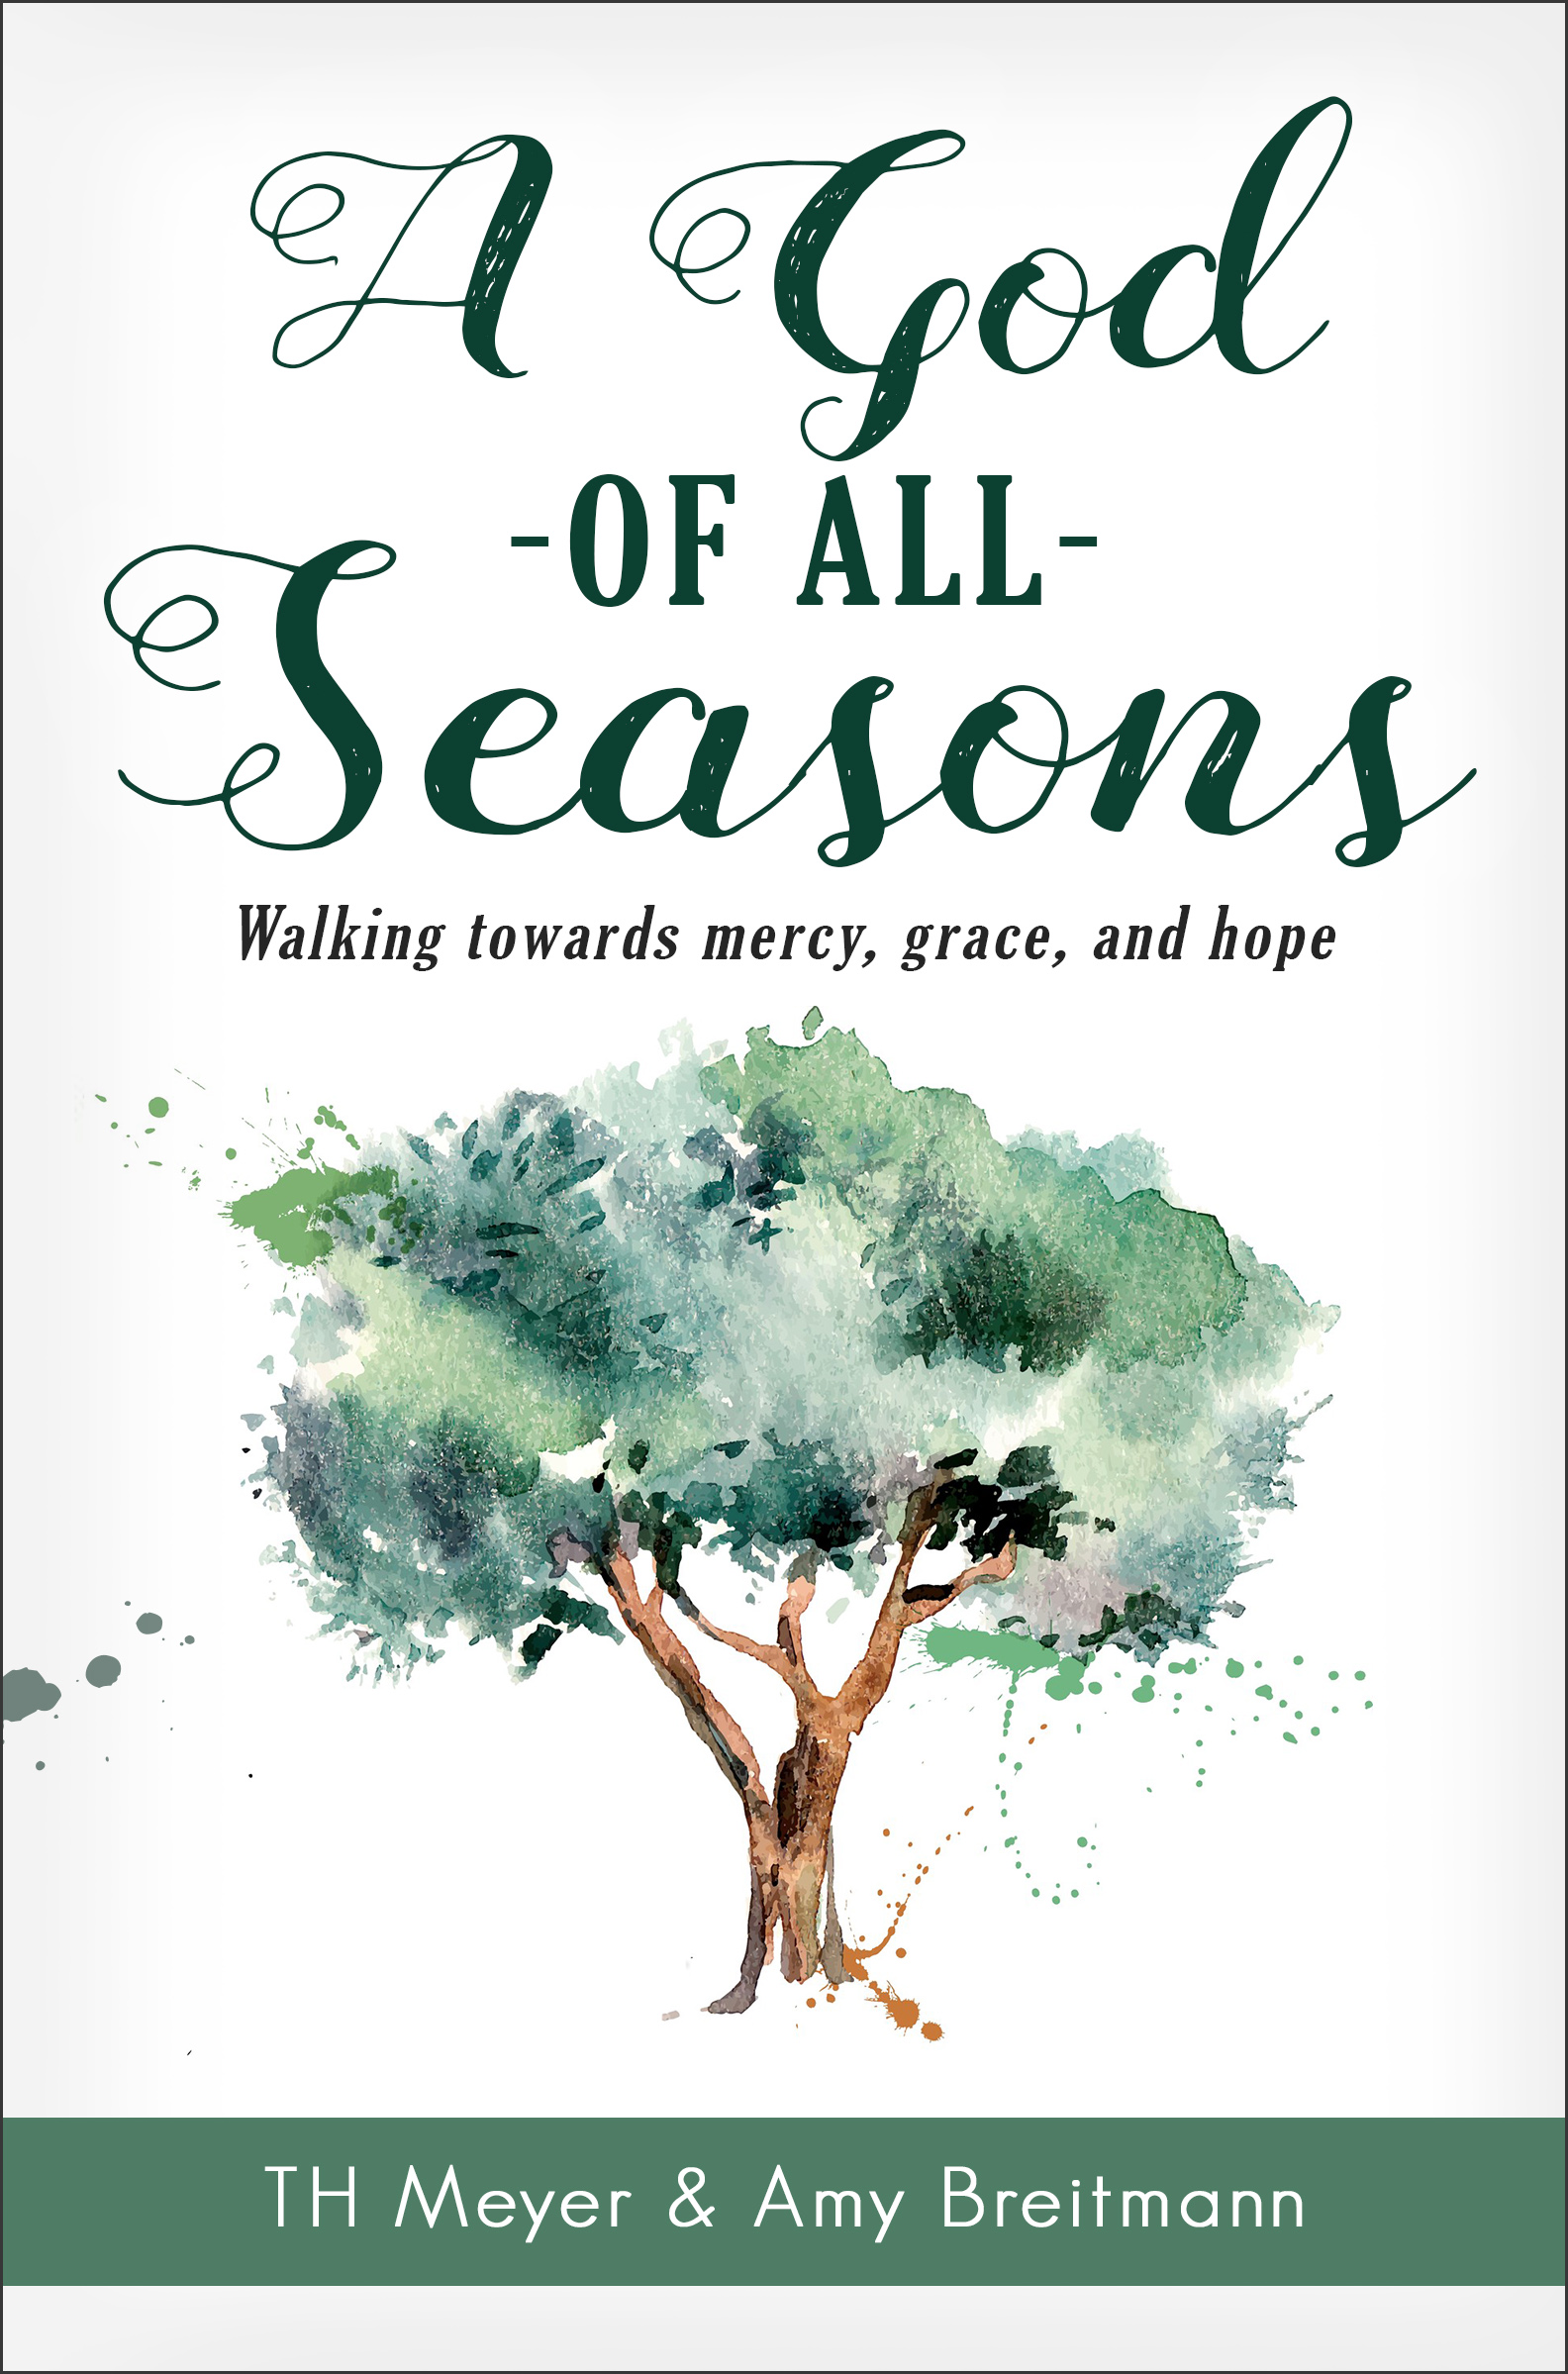 Learn to perceive God's companionship even when you don't sense His nearness. Even when you scarcely believe such closeness is true. Unearth, not only a God who created the seasons, but one who also walks with you through them.